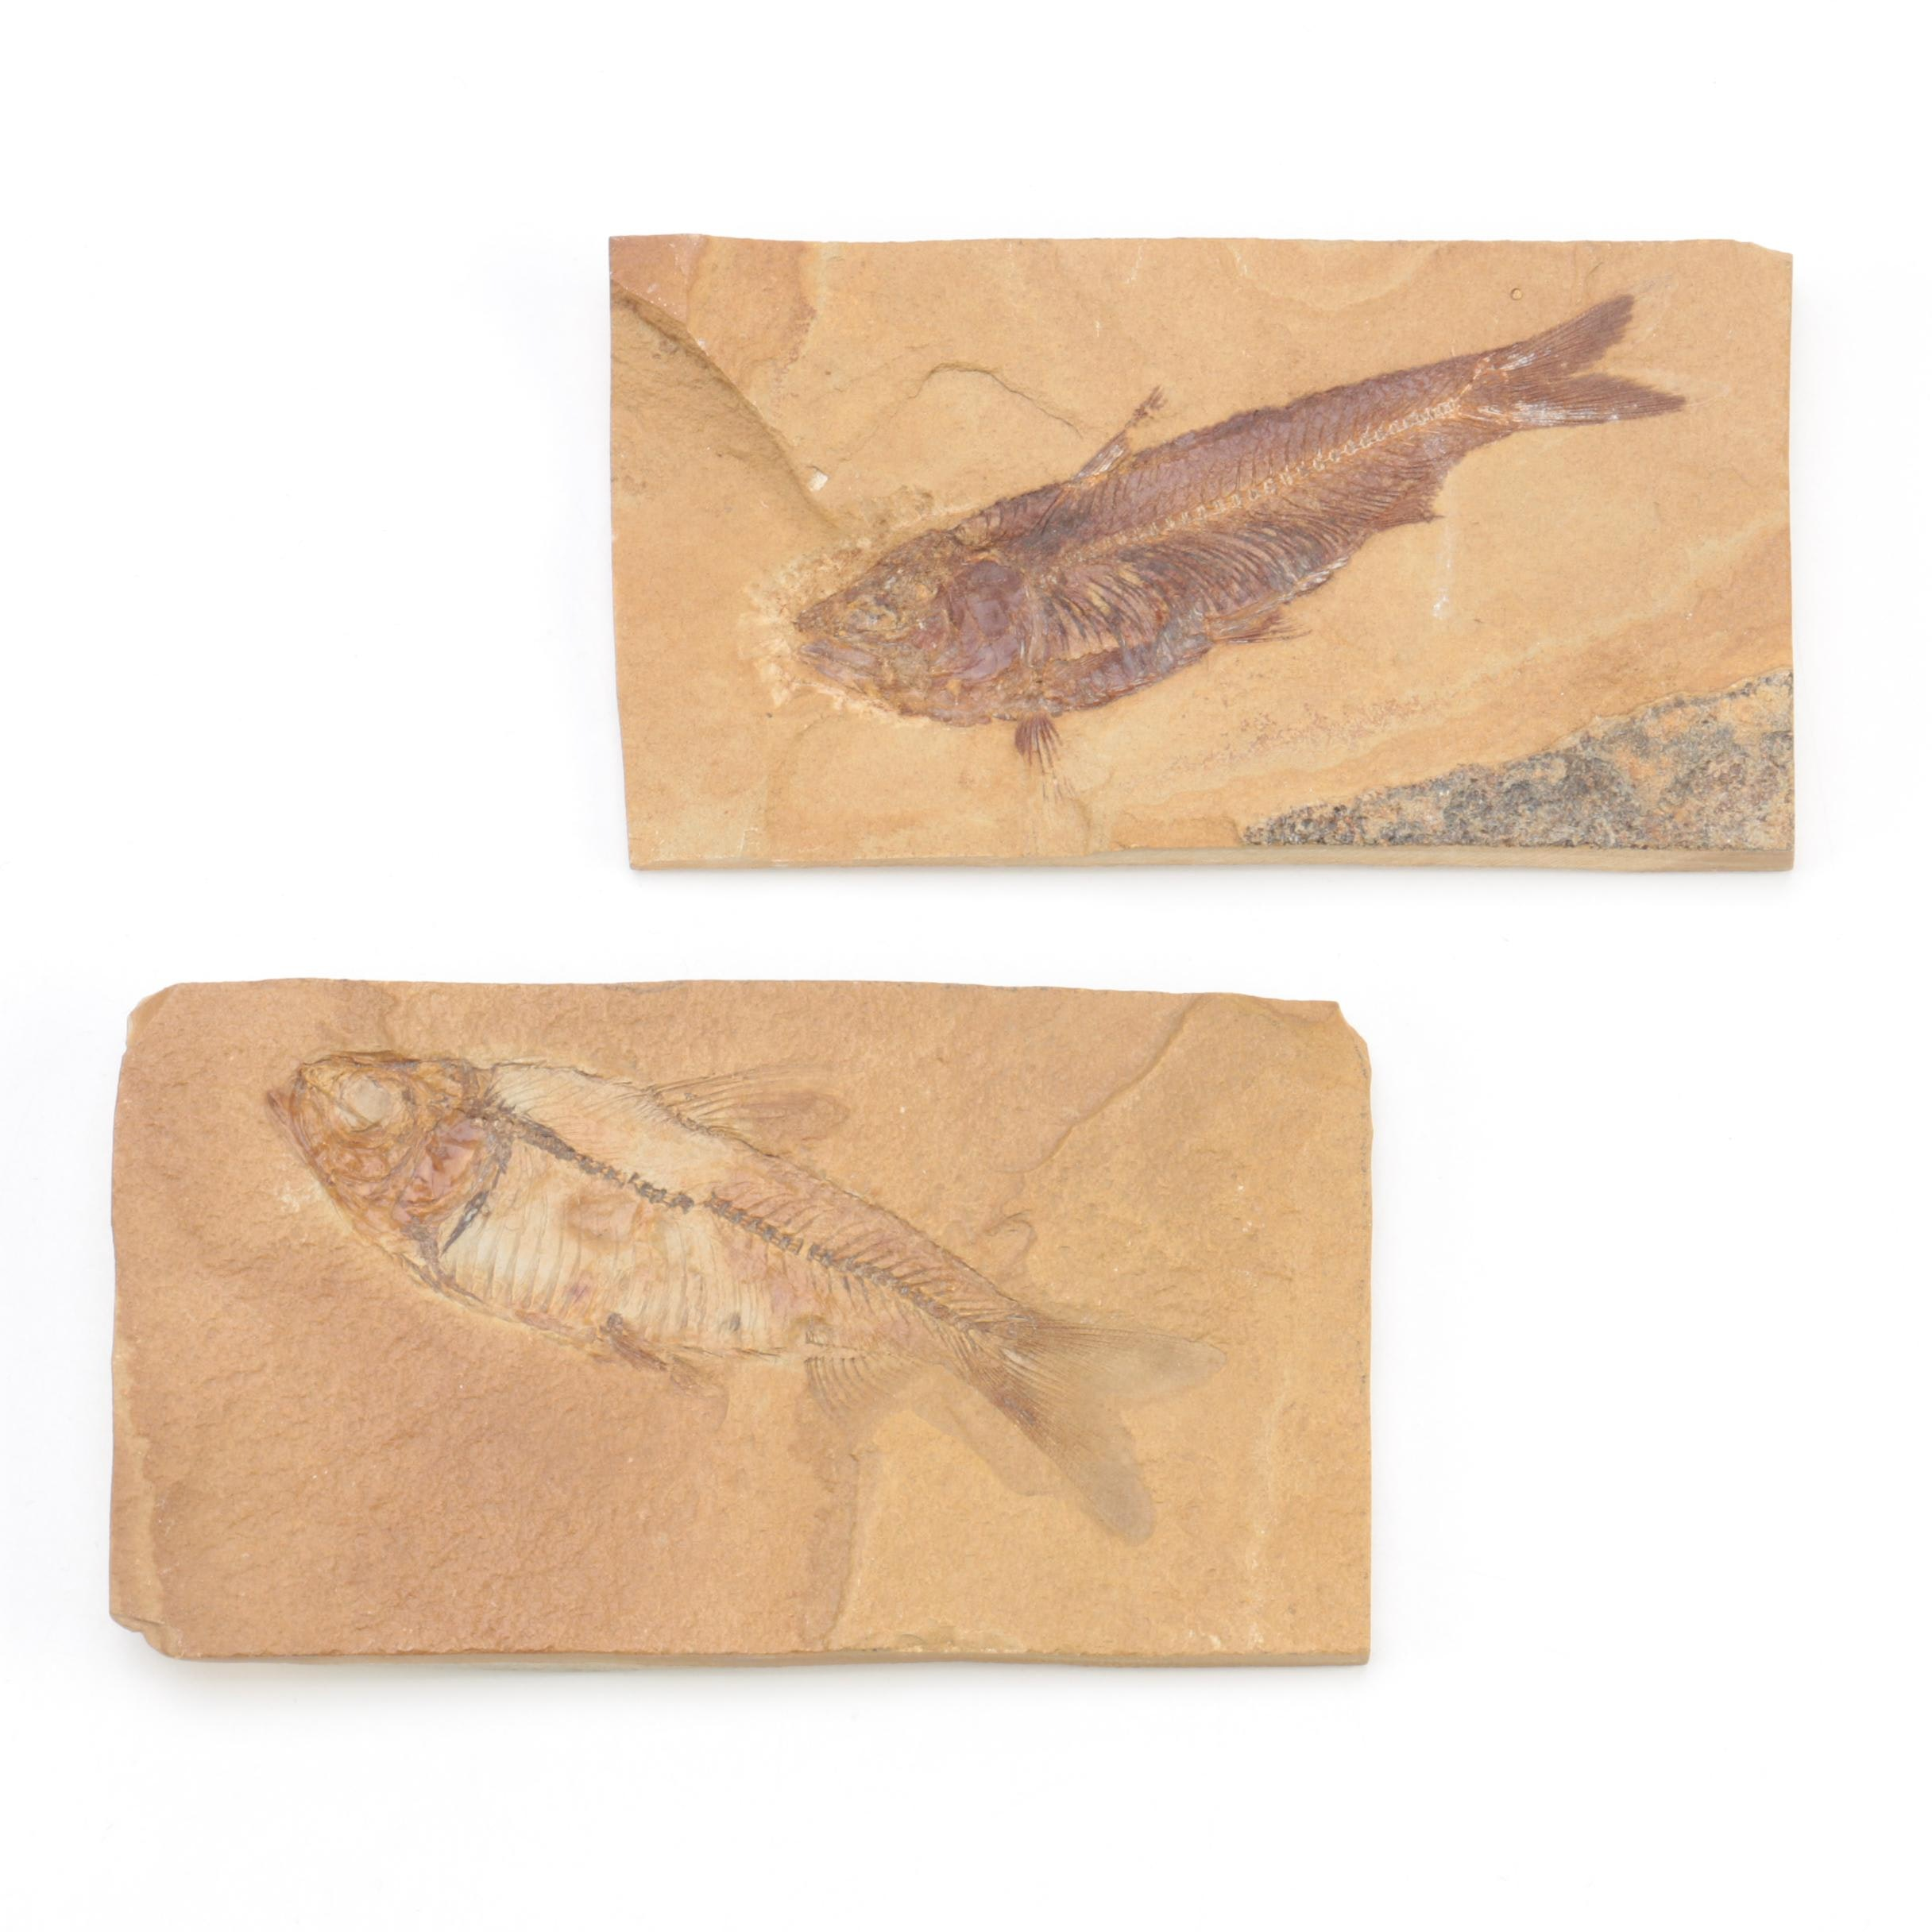 "Fossil ""Knightia"" Specimens"